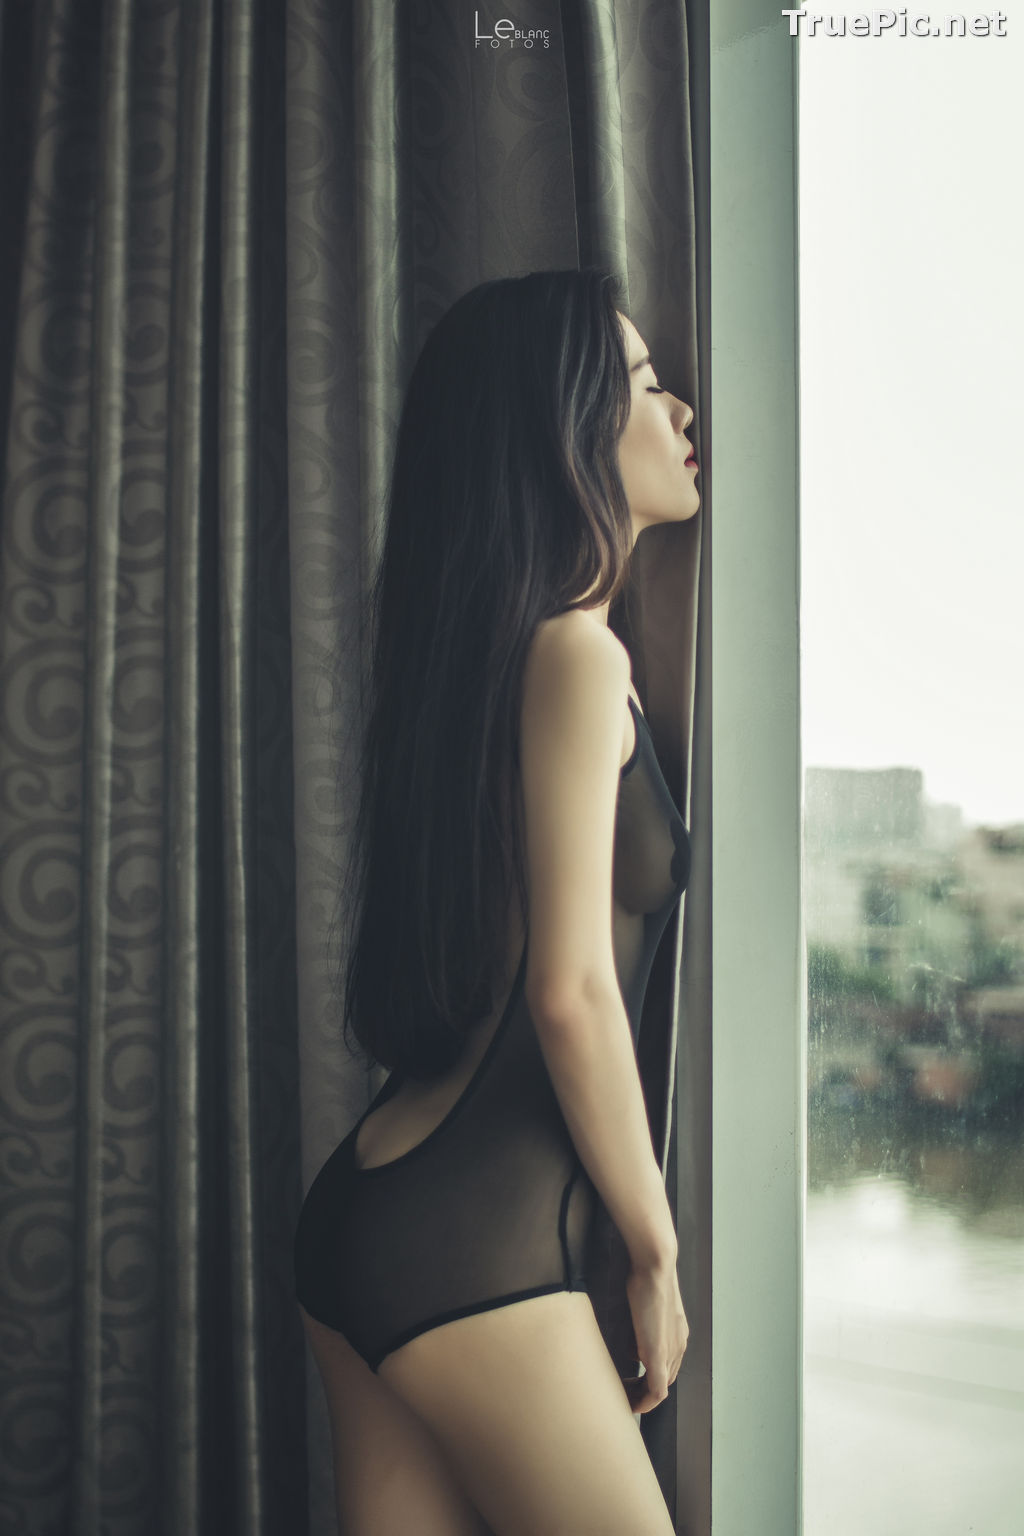 Image Vietnamese Beauties With Lingerie and Bikini – Photo by Le Blanc Studio #13 - TruePic.net - Picture-2